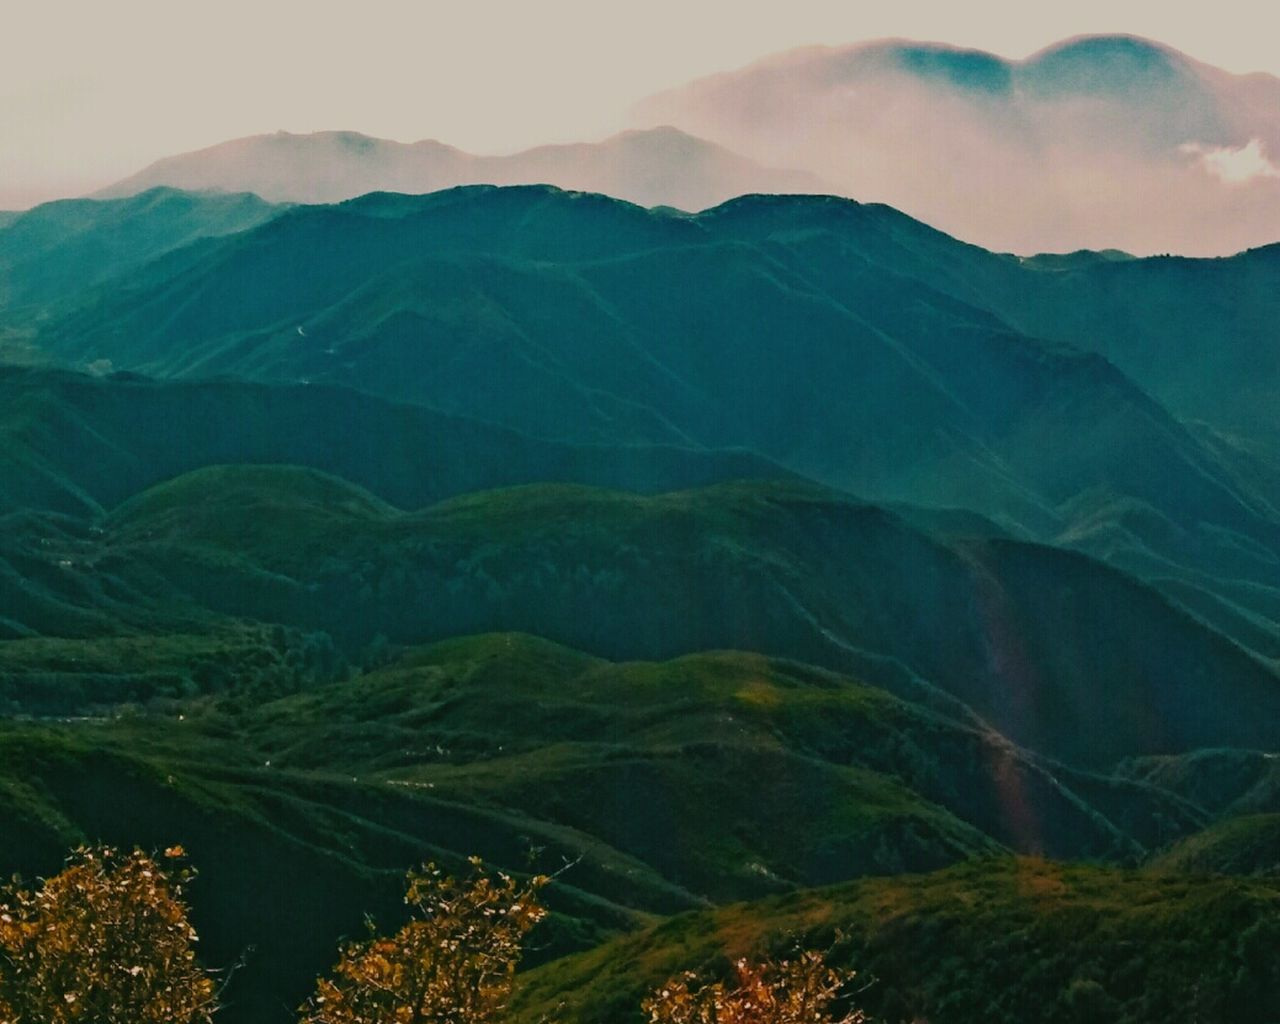 mountain, mountain range, scenics, tranquil scene, tranquility, nature, beauty in nature, outdoors, landscape, green color, physical geography, day, sky, no people